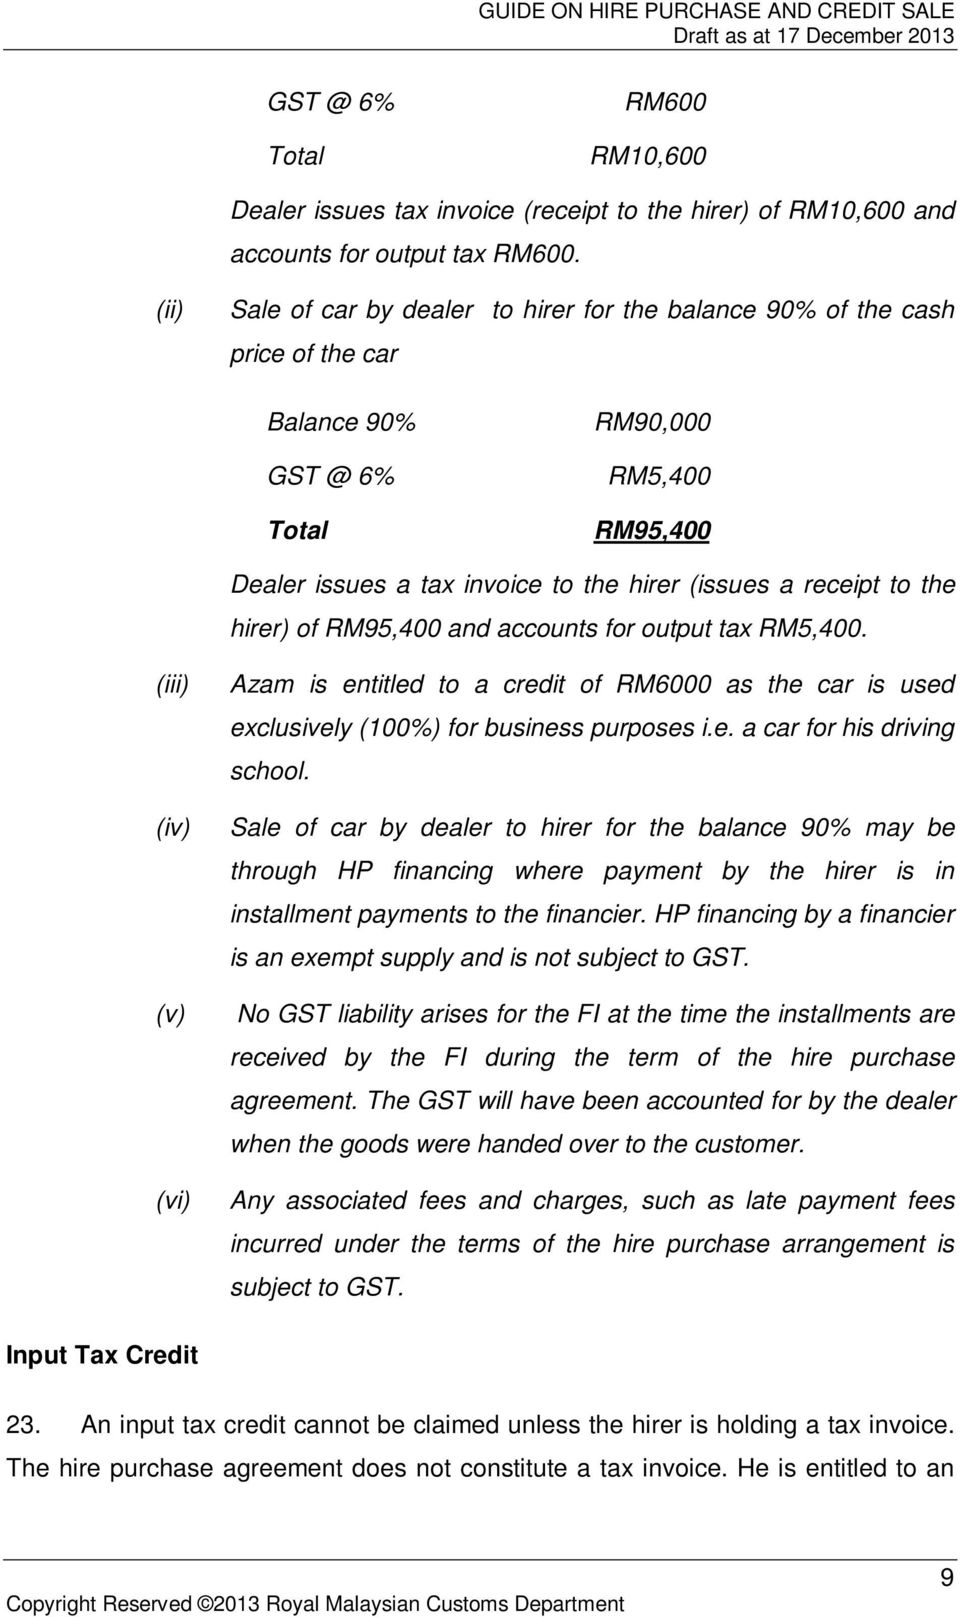 the hirer) of RM95,400 and accounts for output tax RM5,400. (iii) (iv) (v) (vi) Azam is entitled to a credit of RM6000 as the car is used exclusively (100%) for business purposes i.e. a car for his driving school.